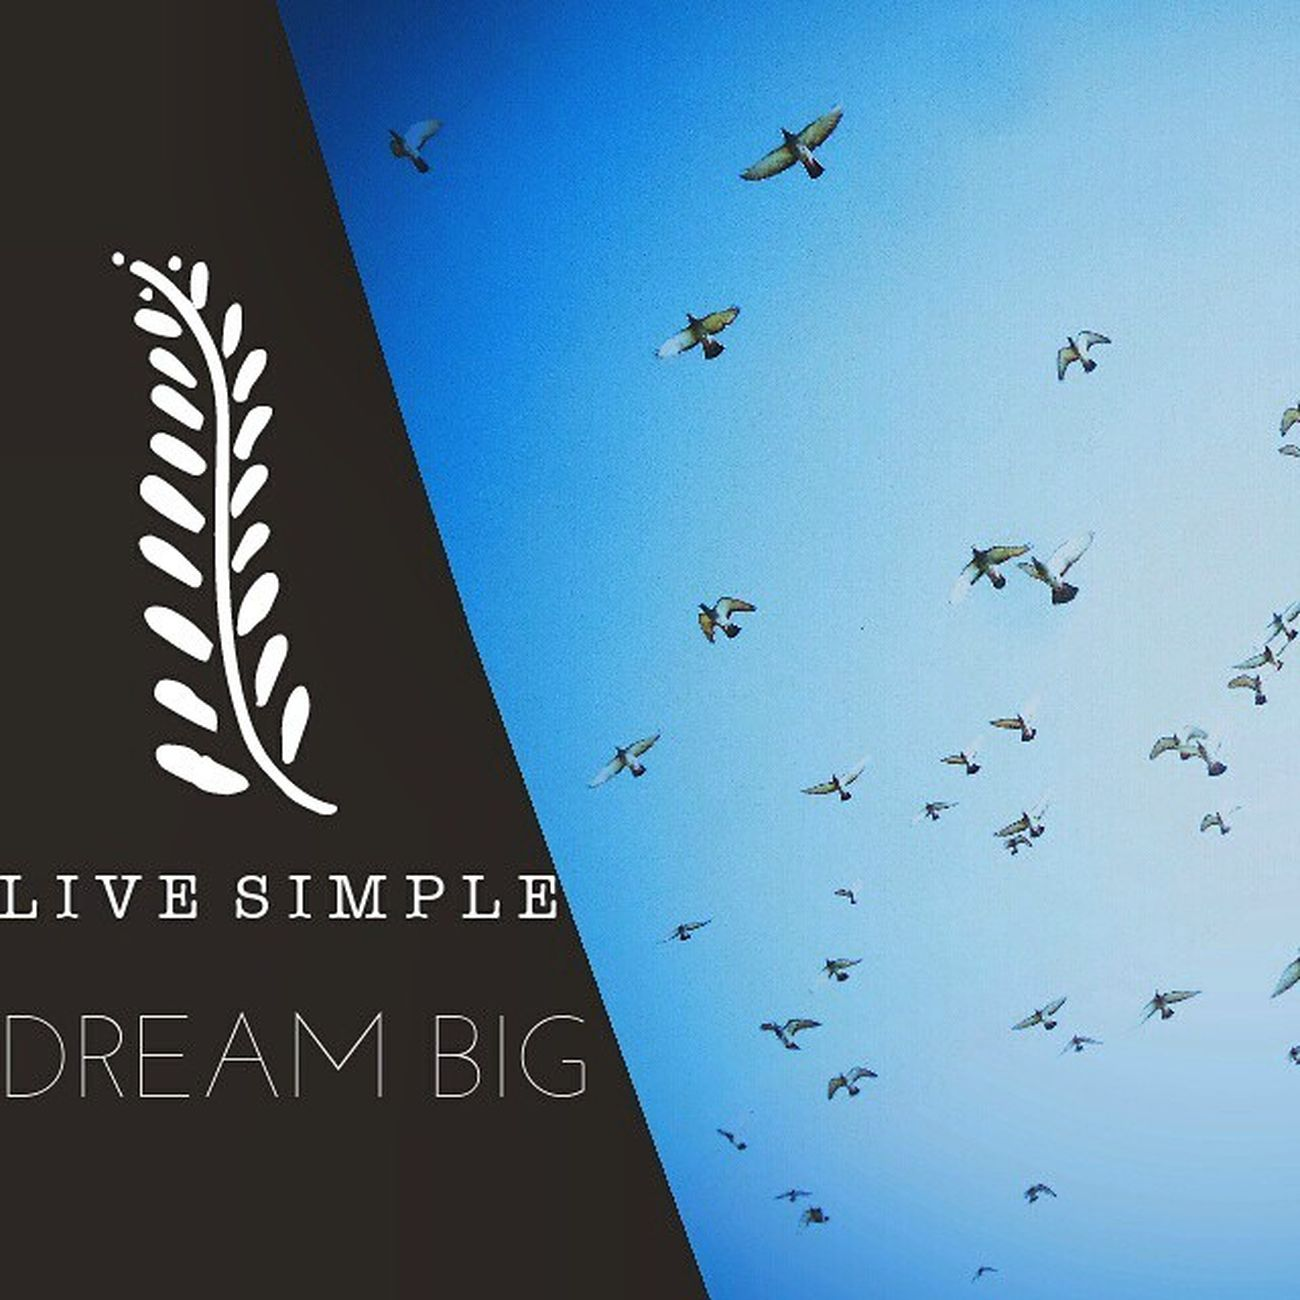 Livesimpledreambig Fly Sandeepmv 8884922253 skfotography 2014 vscocam lonelyplanet lonelyplanetindia Vscaward explore popular instafollow instalike canon TFlers 20likes instafood igers instadaily igworldcontest_2 ig_india